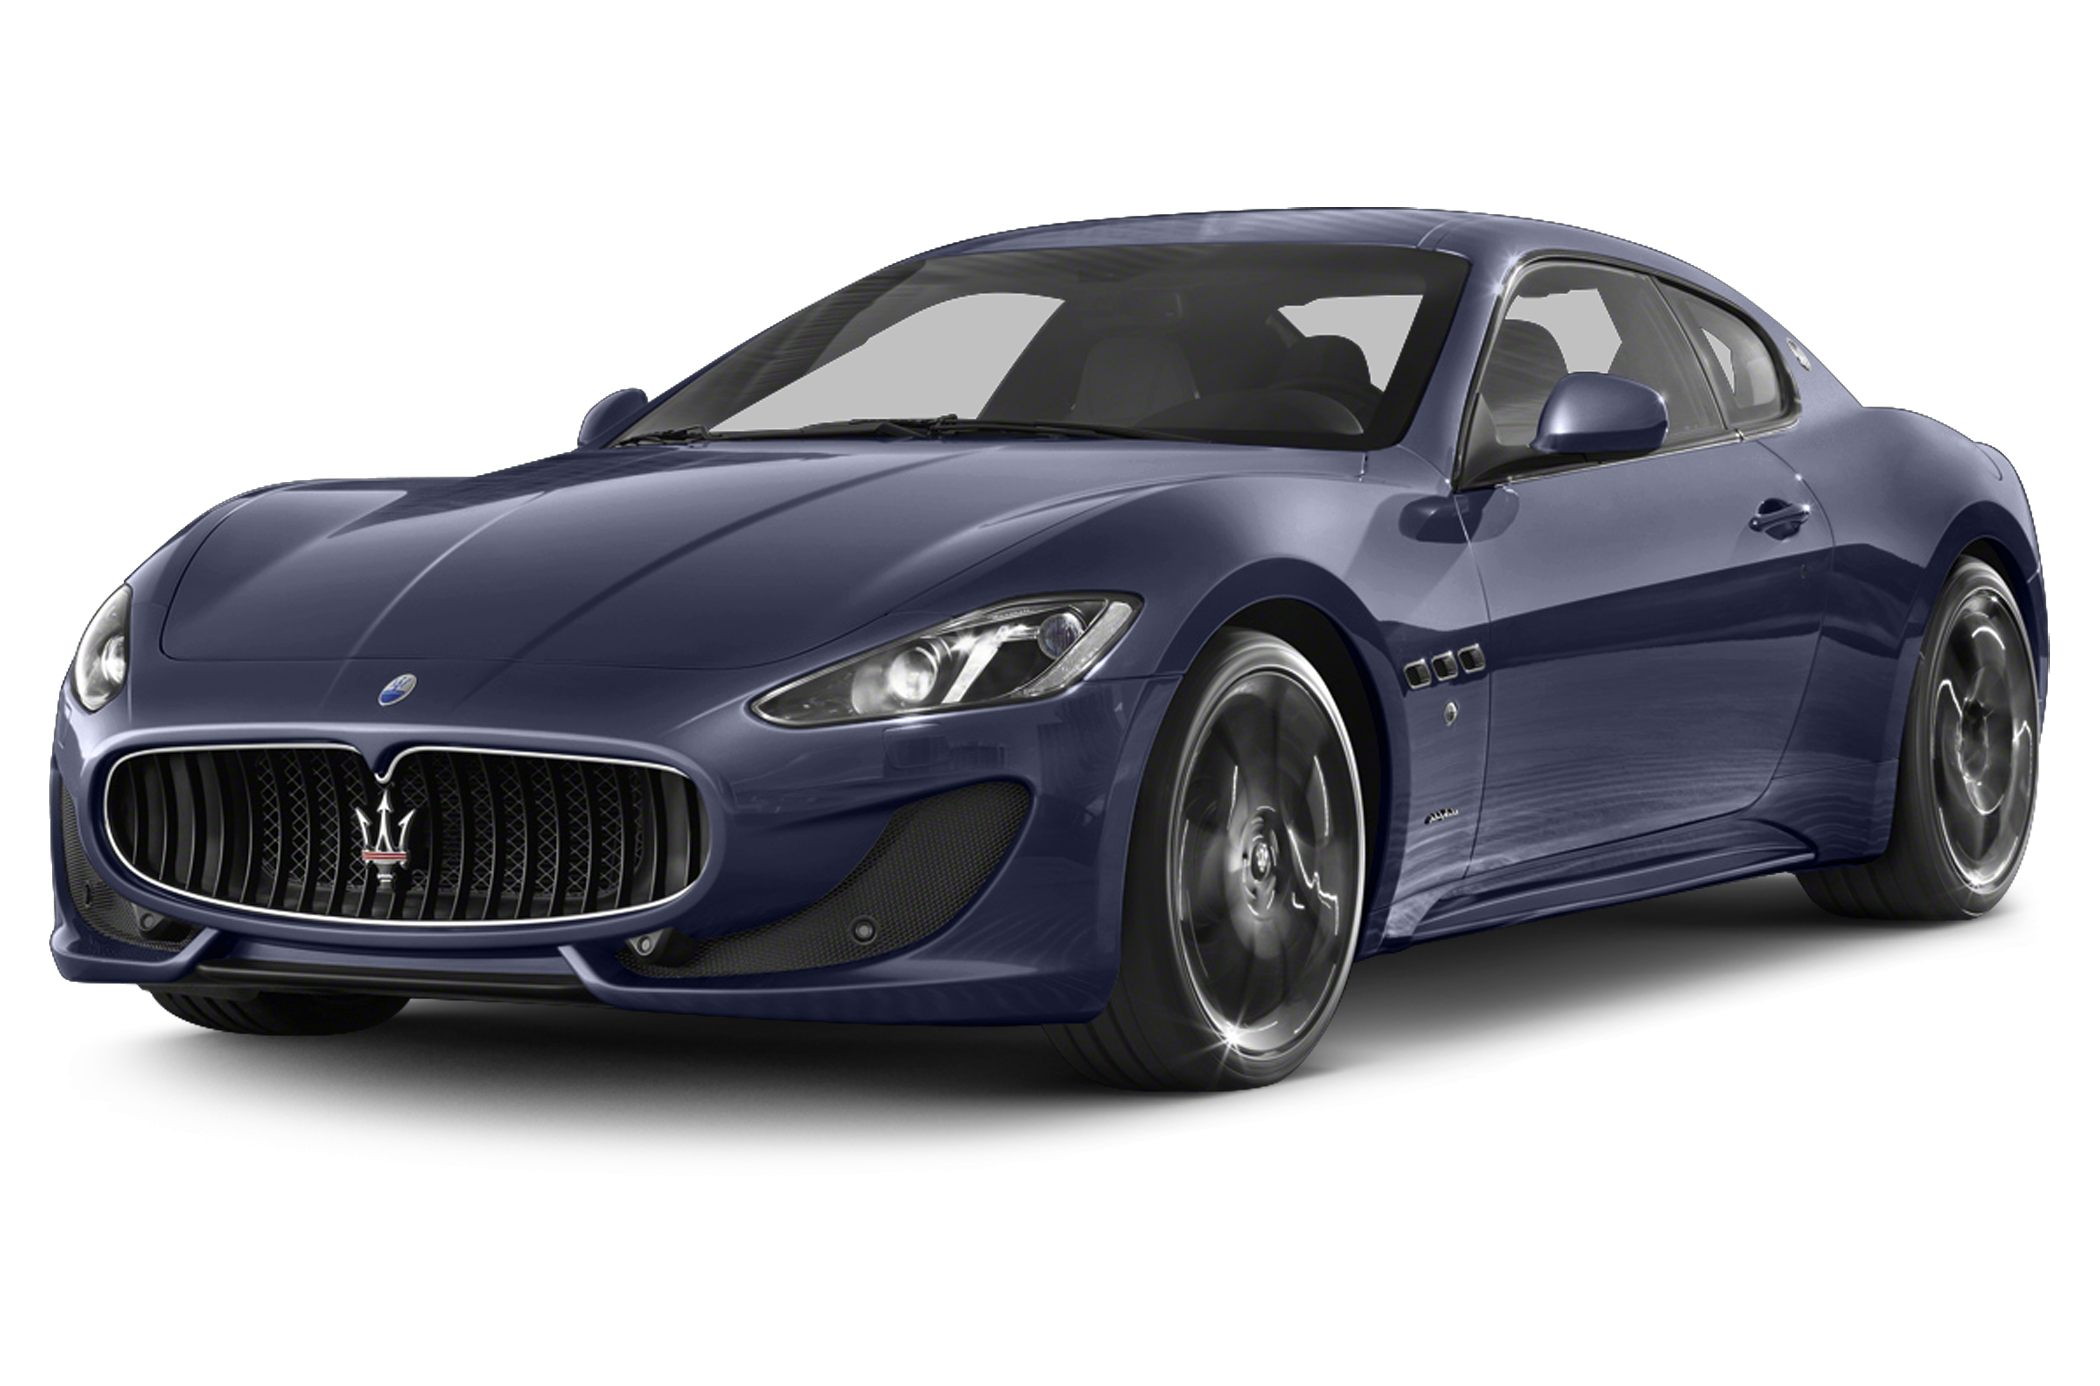 2017 maserati granturismo maserati of albany. Black Bedroom Furniture Sets. Home Design Ideas